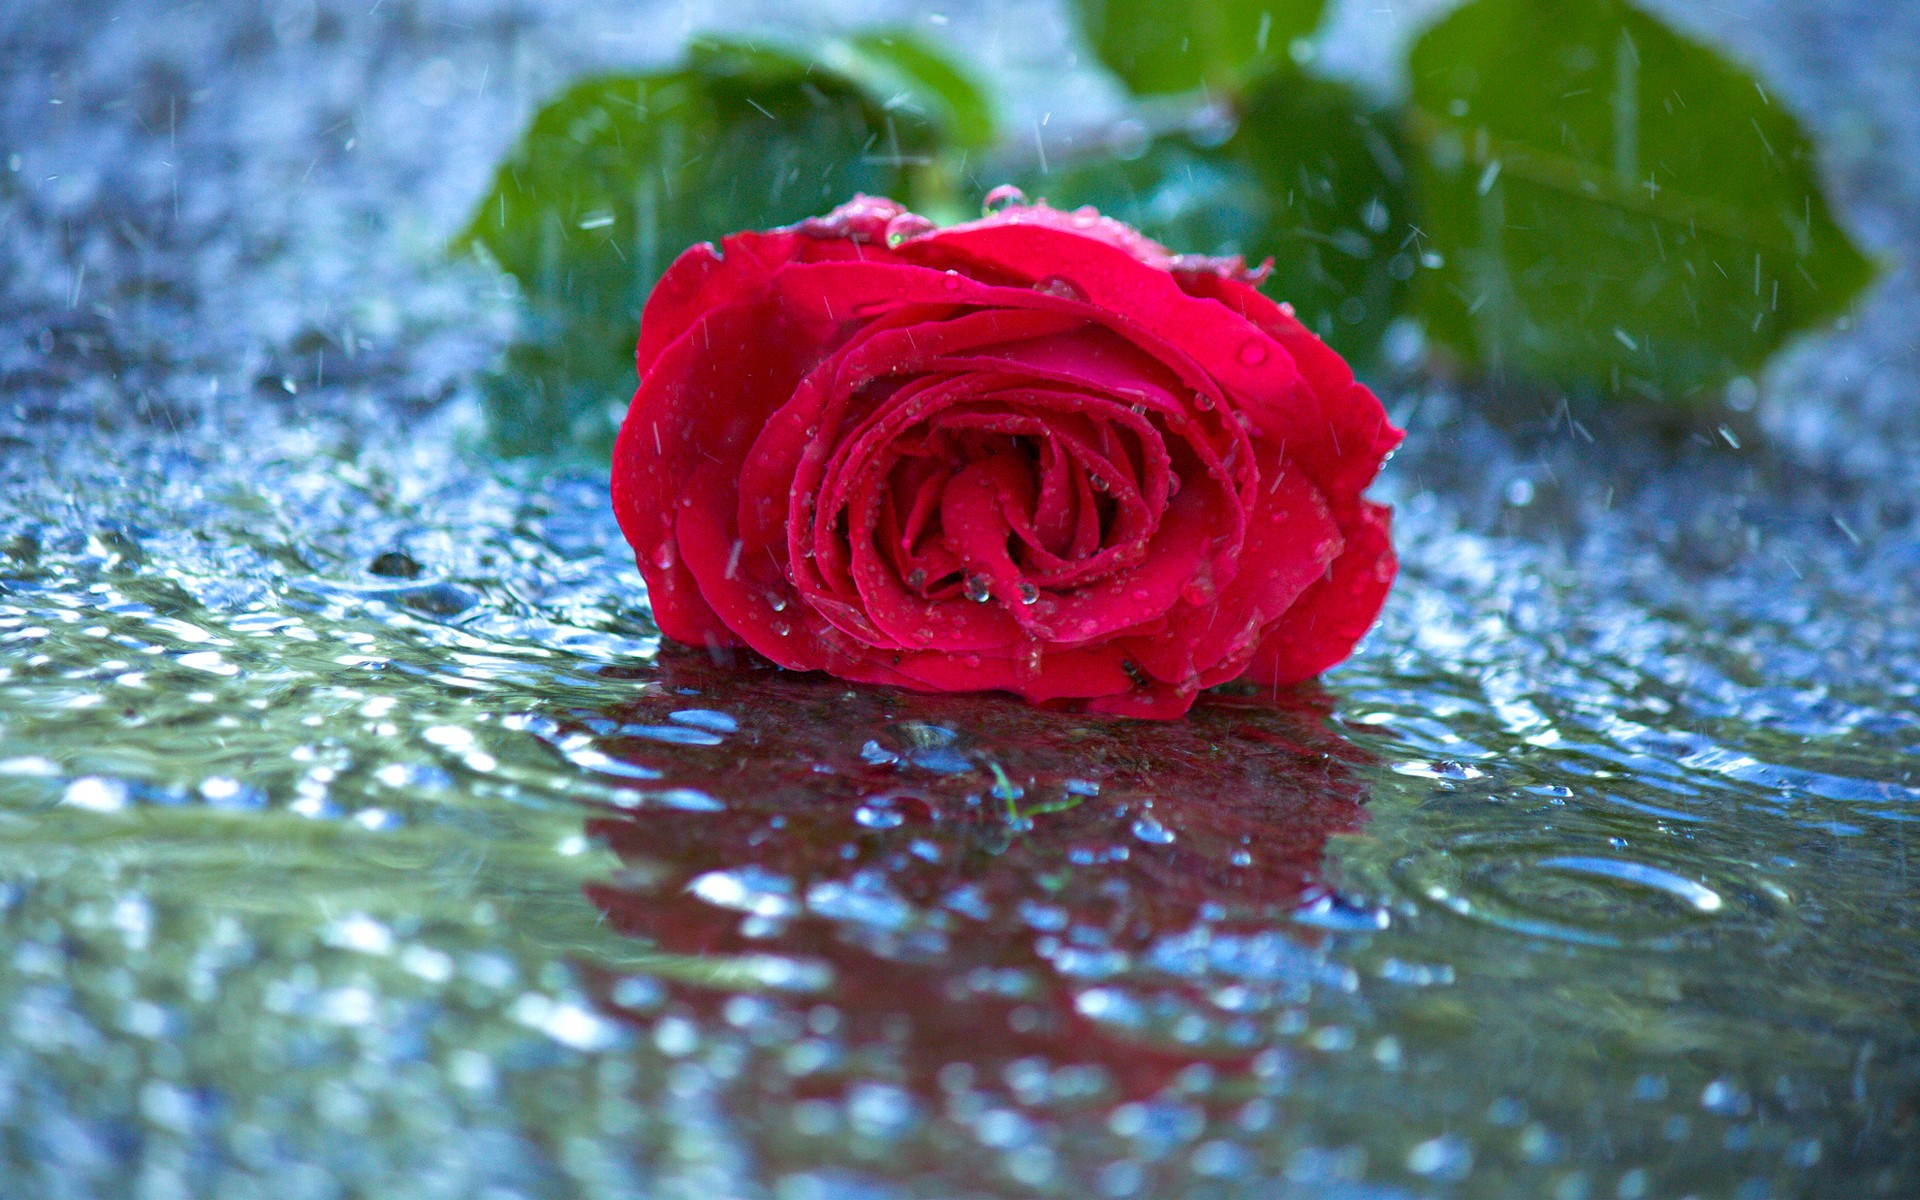 Red rose in the rain full hd wallpaper and background image earth rose flower earth red rose rain wallpaper altavistaventures Images